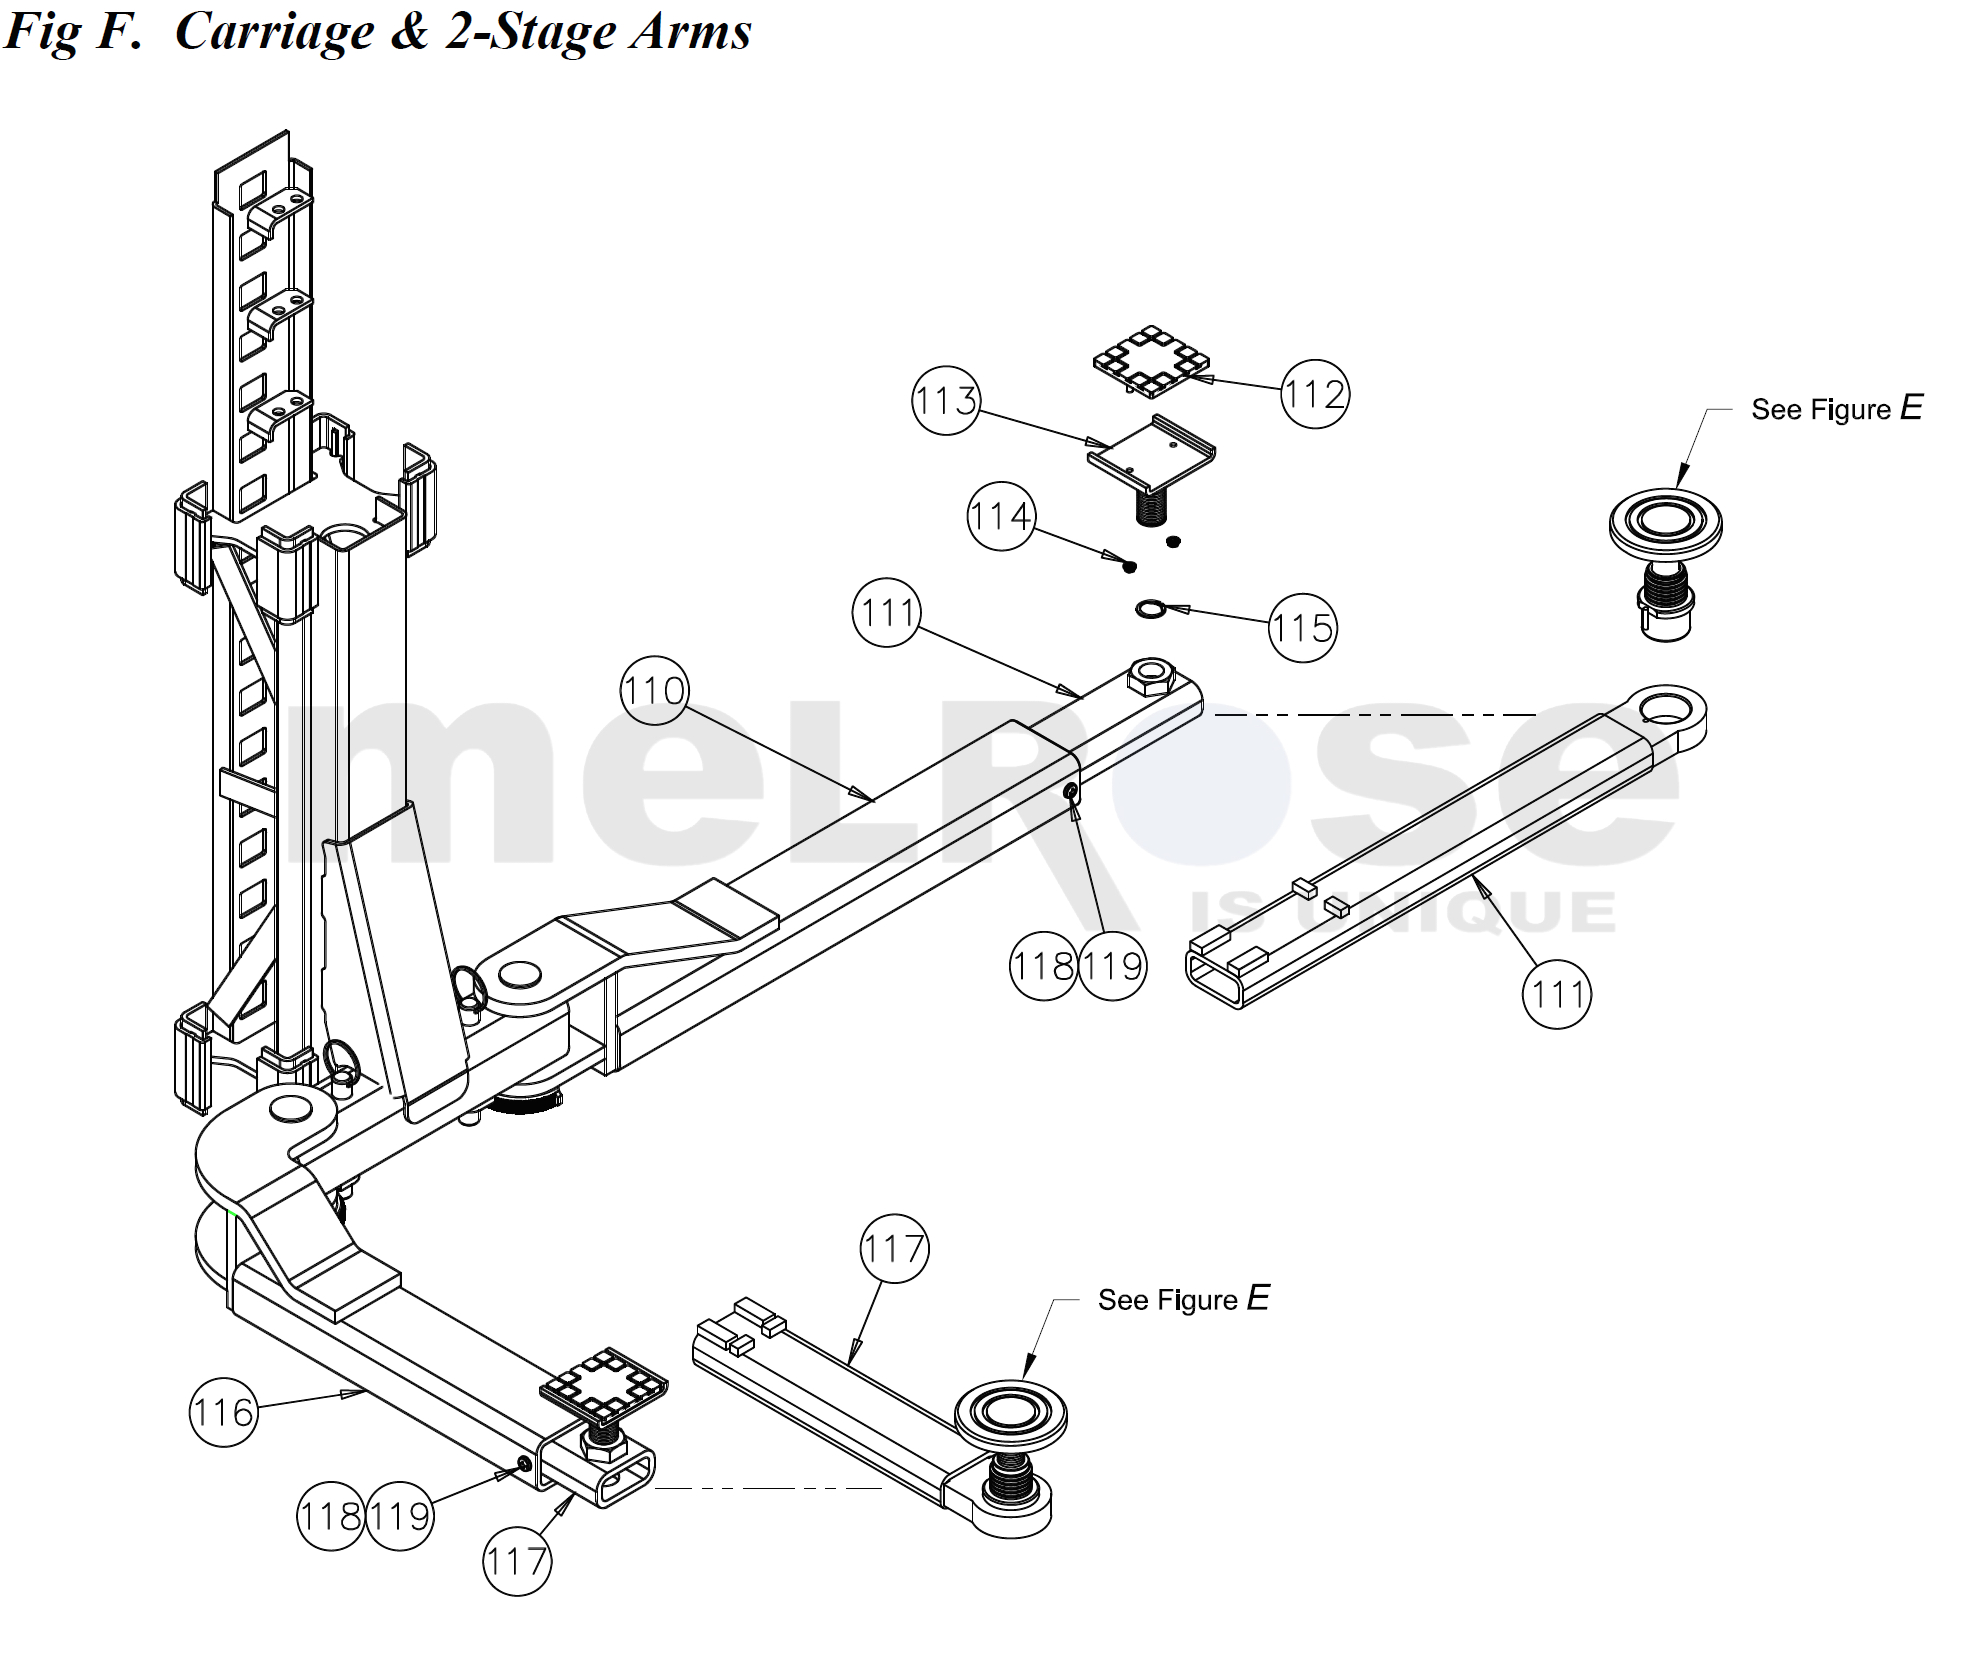 cl9-carriage-and-2-stage-arm-assembly-marked.jpg